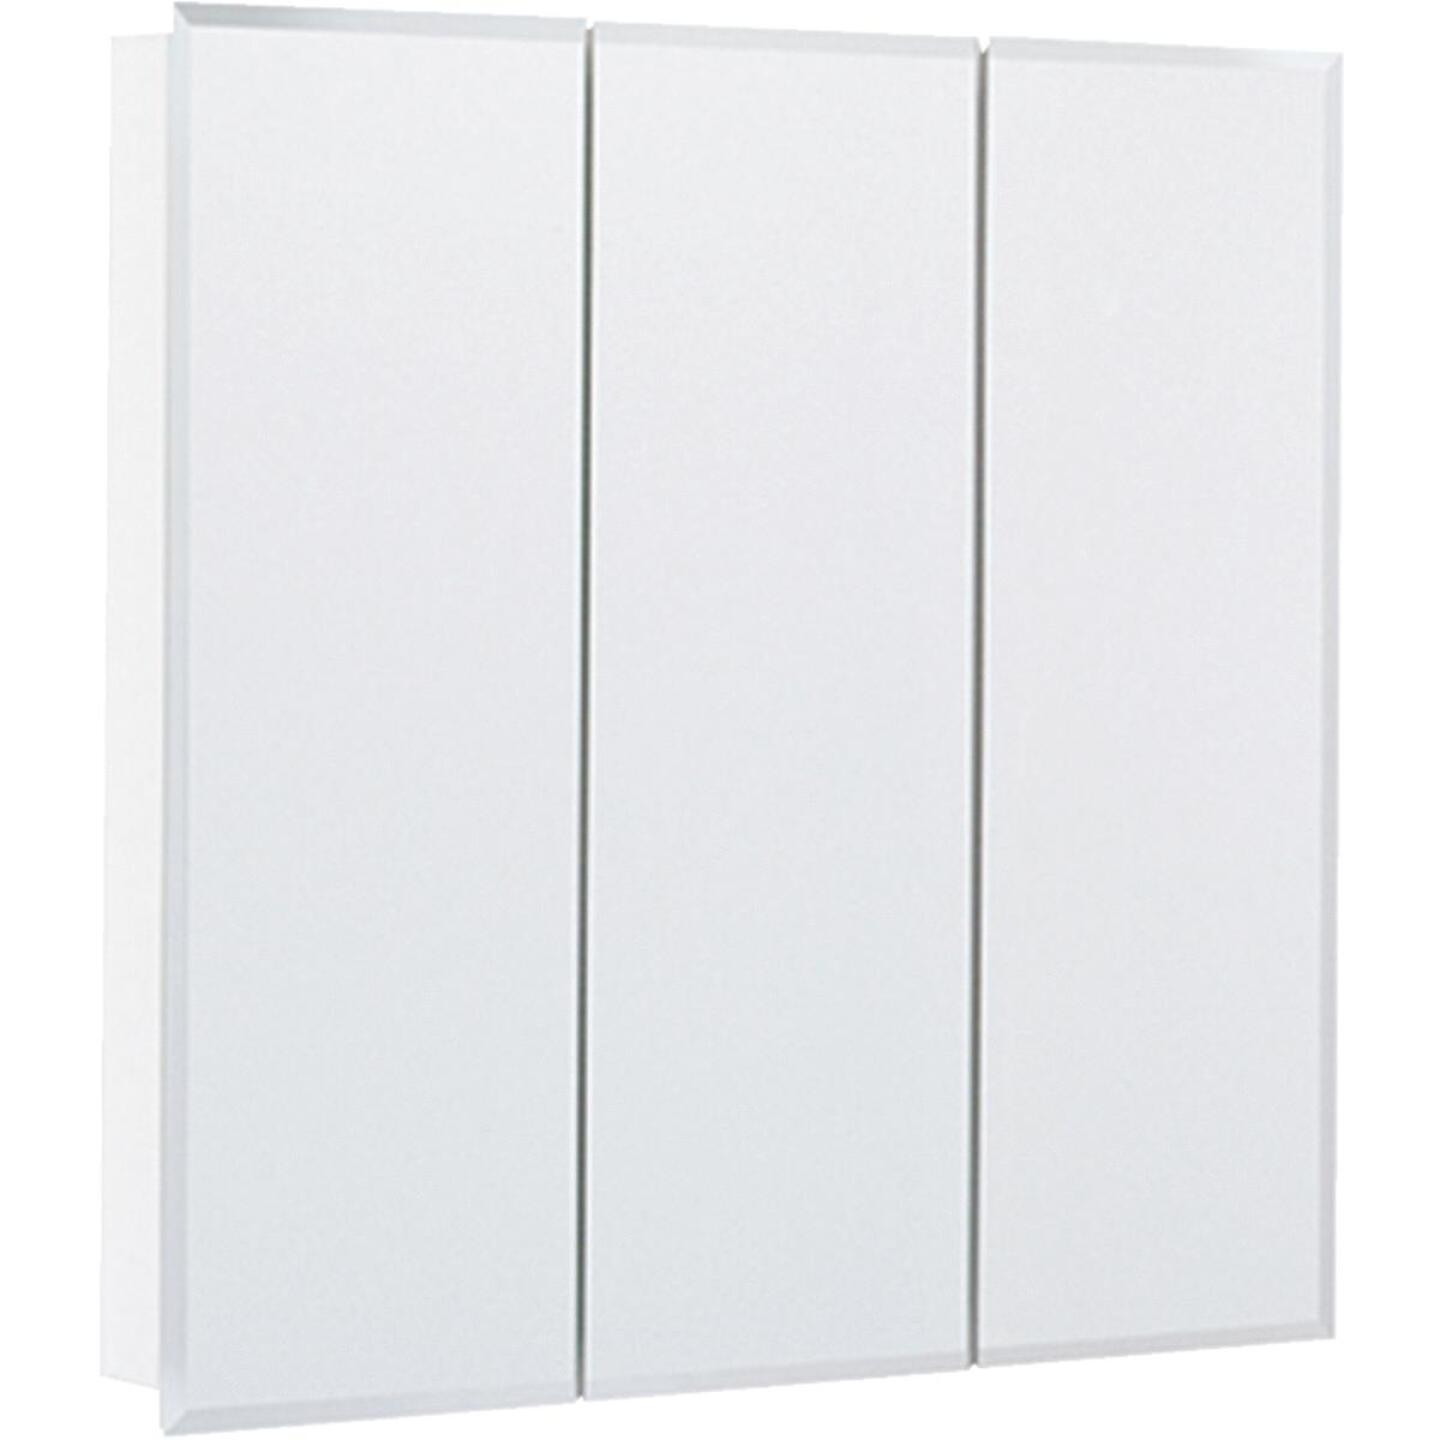 Continental Cabinets Frameless Beveled 30 In. W x 29-3/4 In. H x 4-1/4 In. D Tri-View Surface Mount Medicine Cabinet Image 3